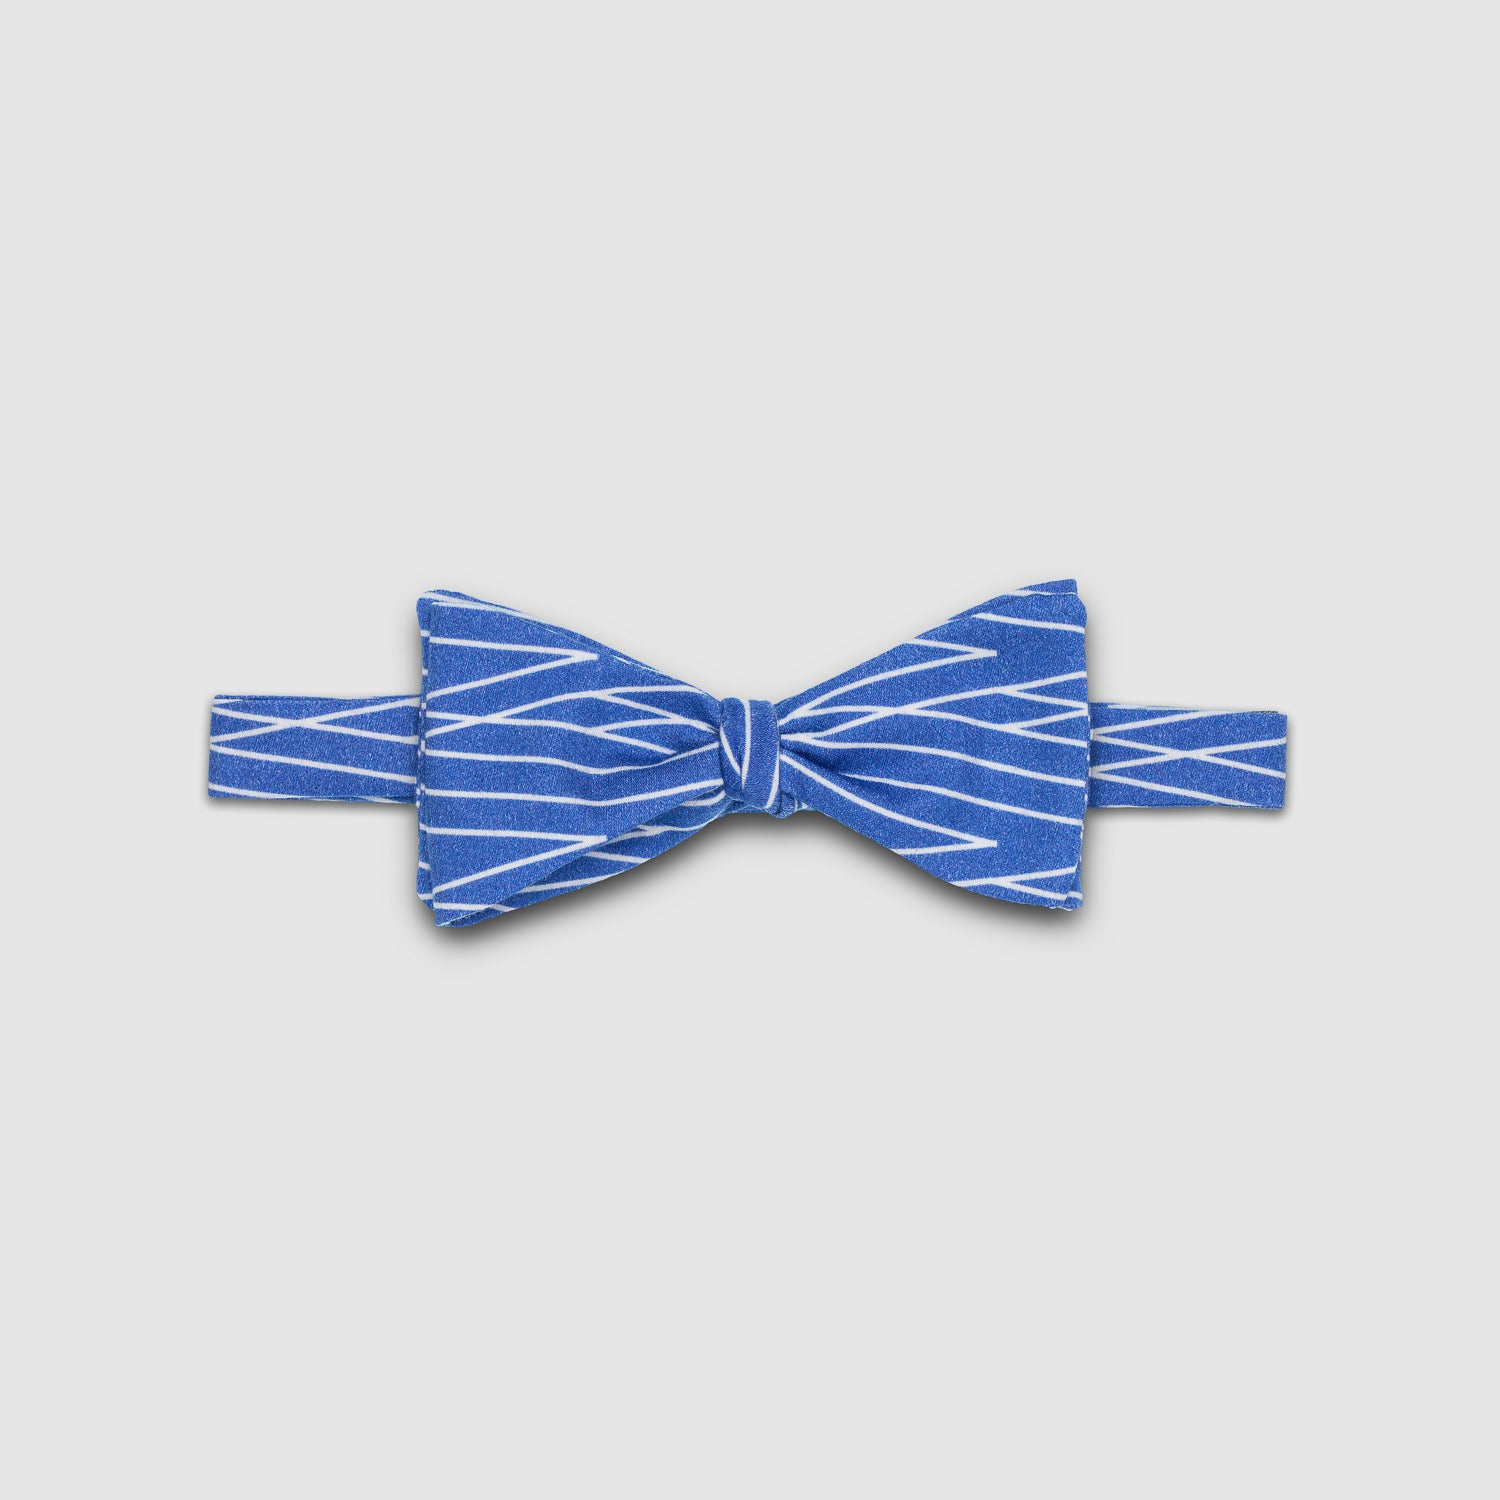 Image of DERVIS – the bow tie